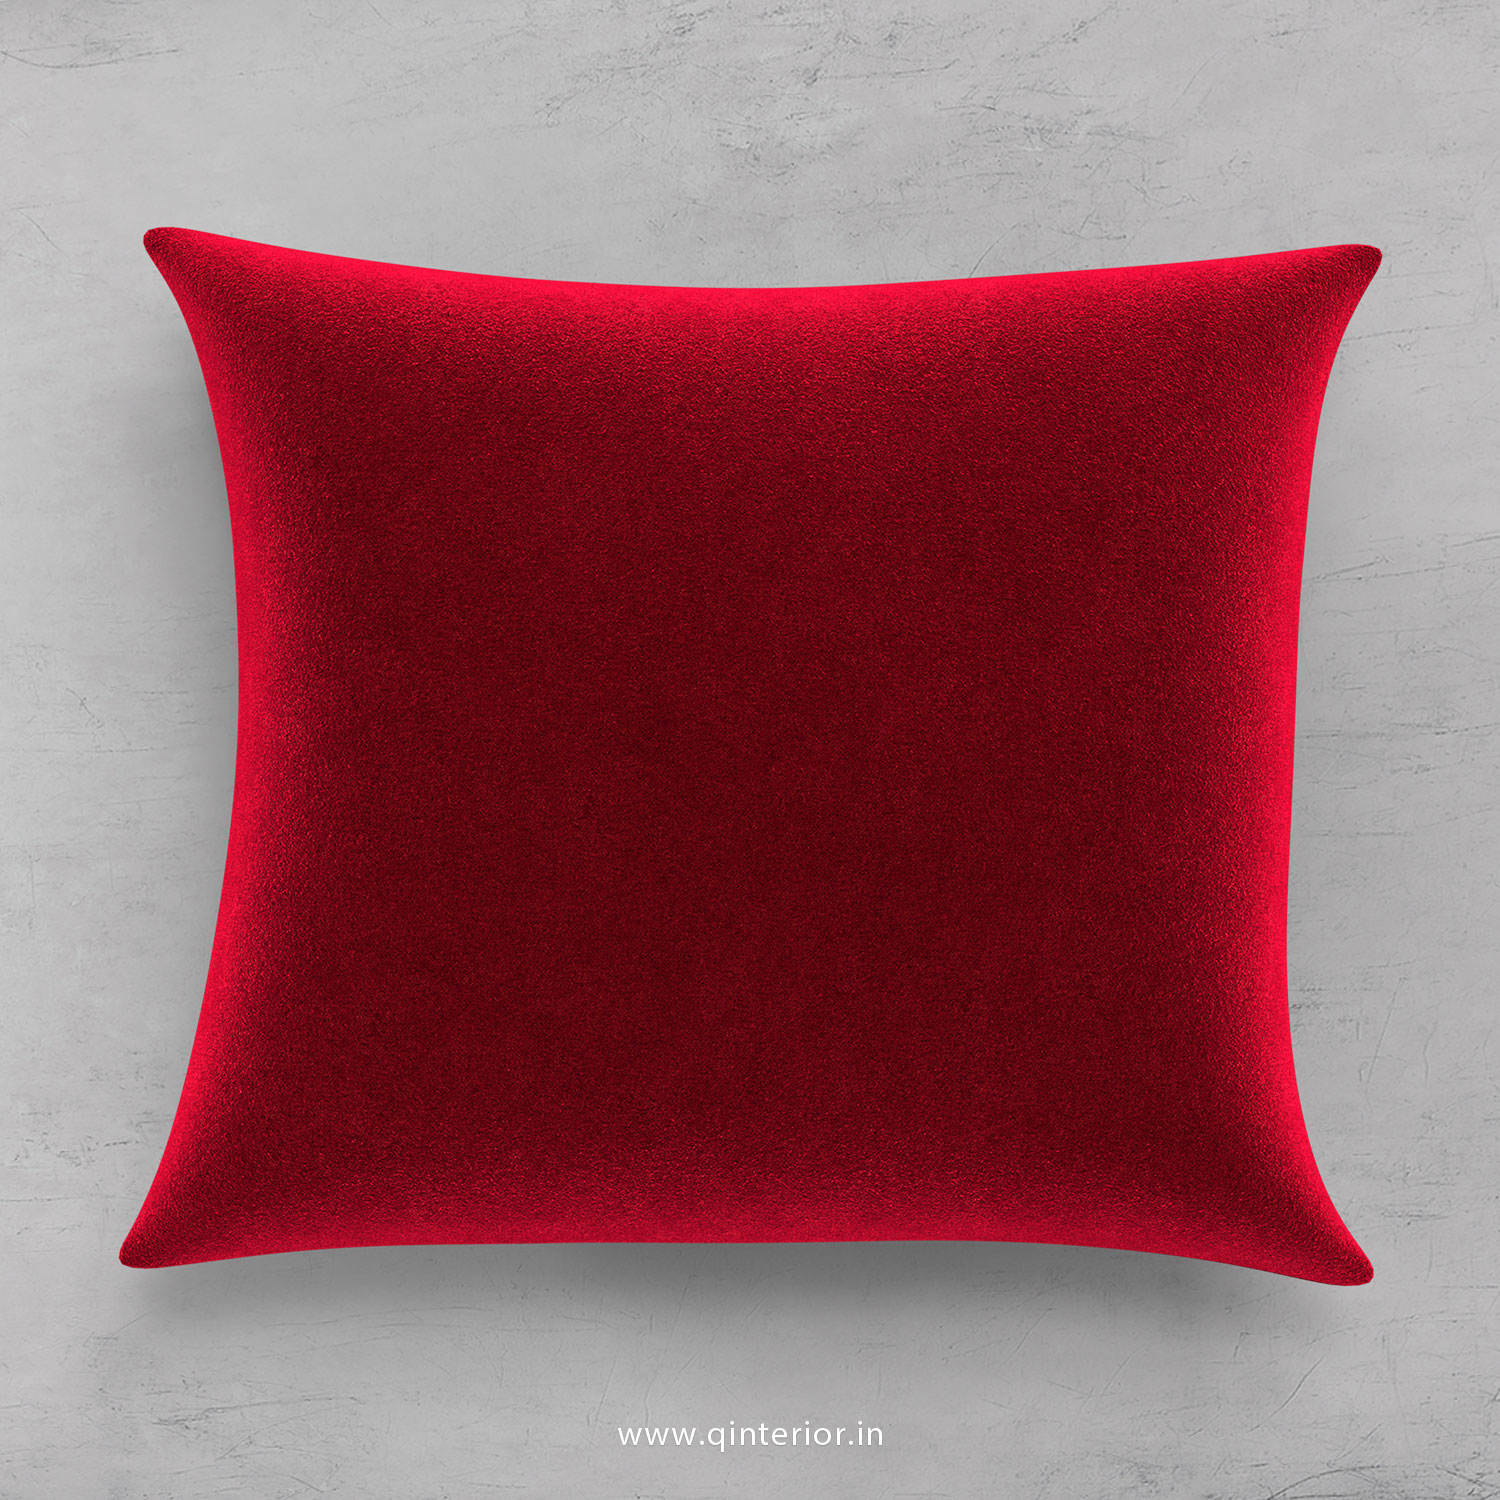 Cranberry Velvet Cushion With Cushion Cover - CUS001 FL08